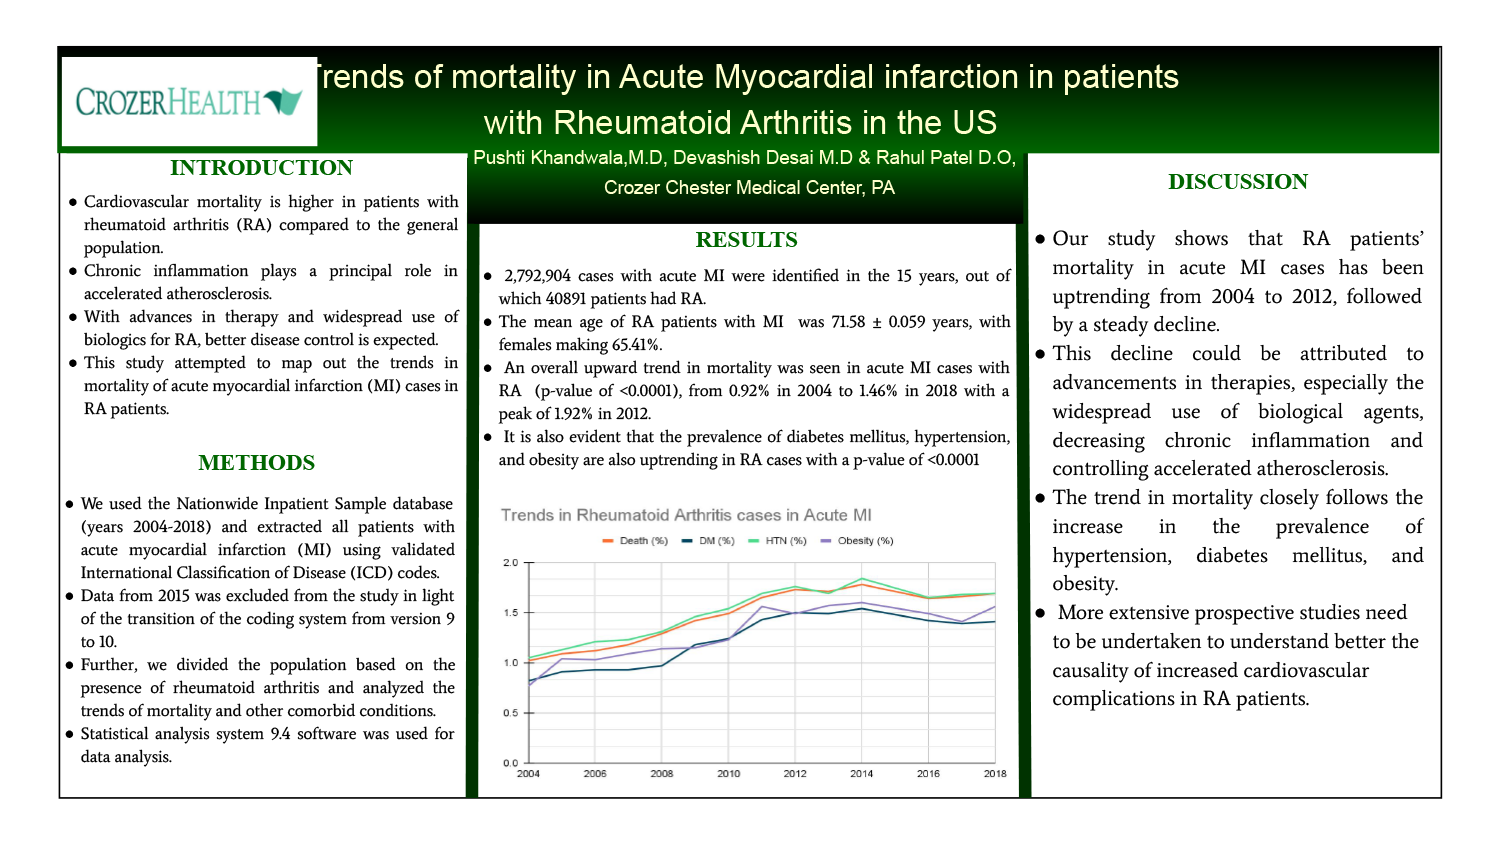 Pushti Khandwala - PAS-81-Trends-of-mortality-in-Acute-Myocardial-Infarction-in-patients-with-Rheumatoid-Arthritis-in-the-US